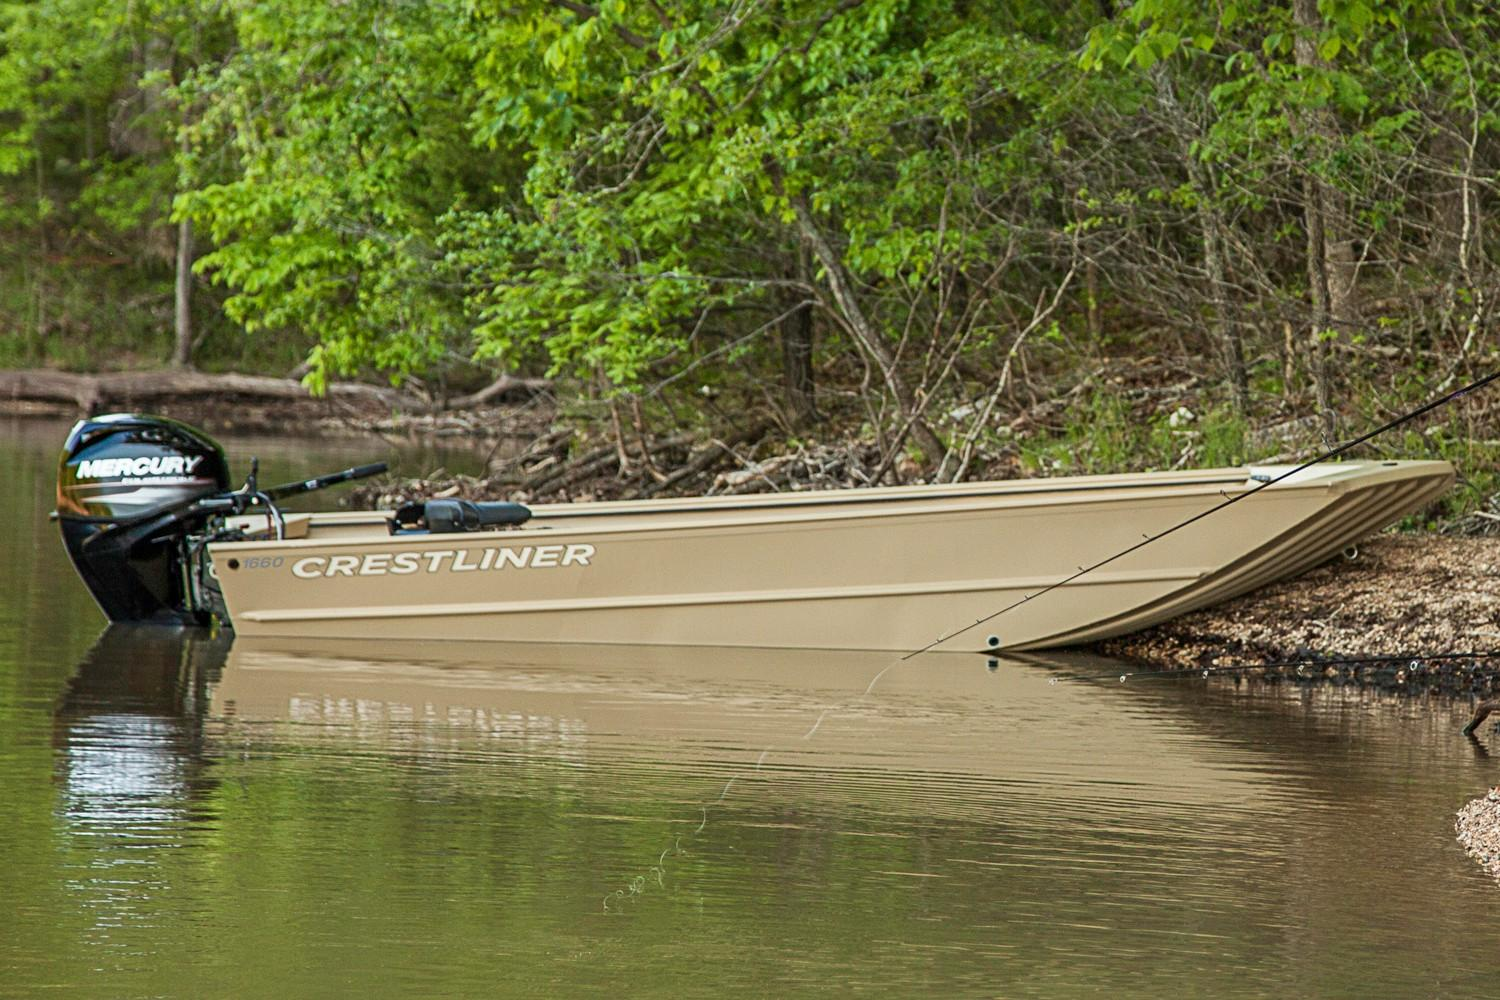 2019 Crestliner 1660 RETRIEVER JON DELUXE in Amory, Mississippi - Photo 1